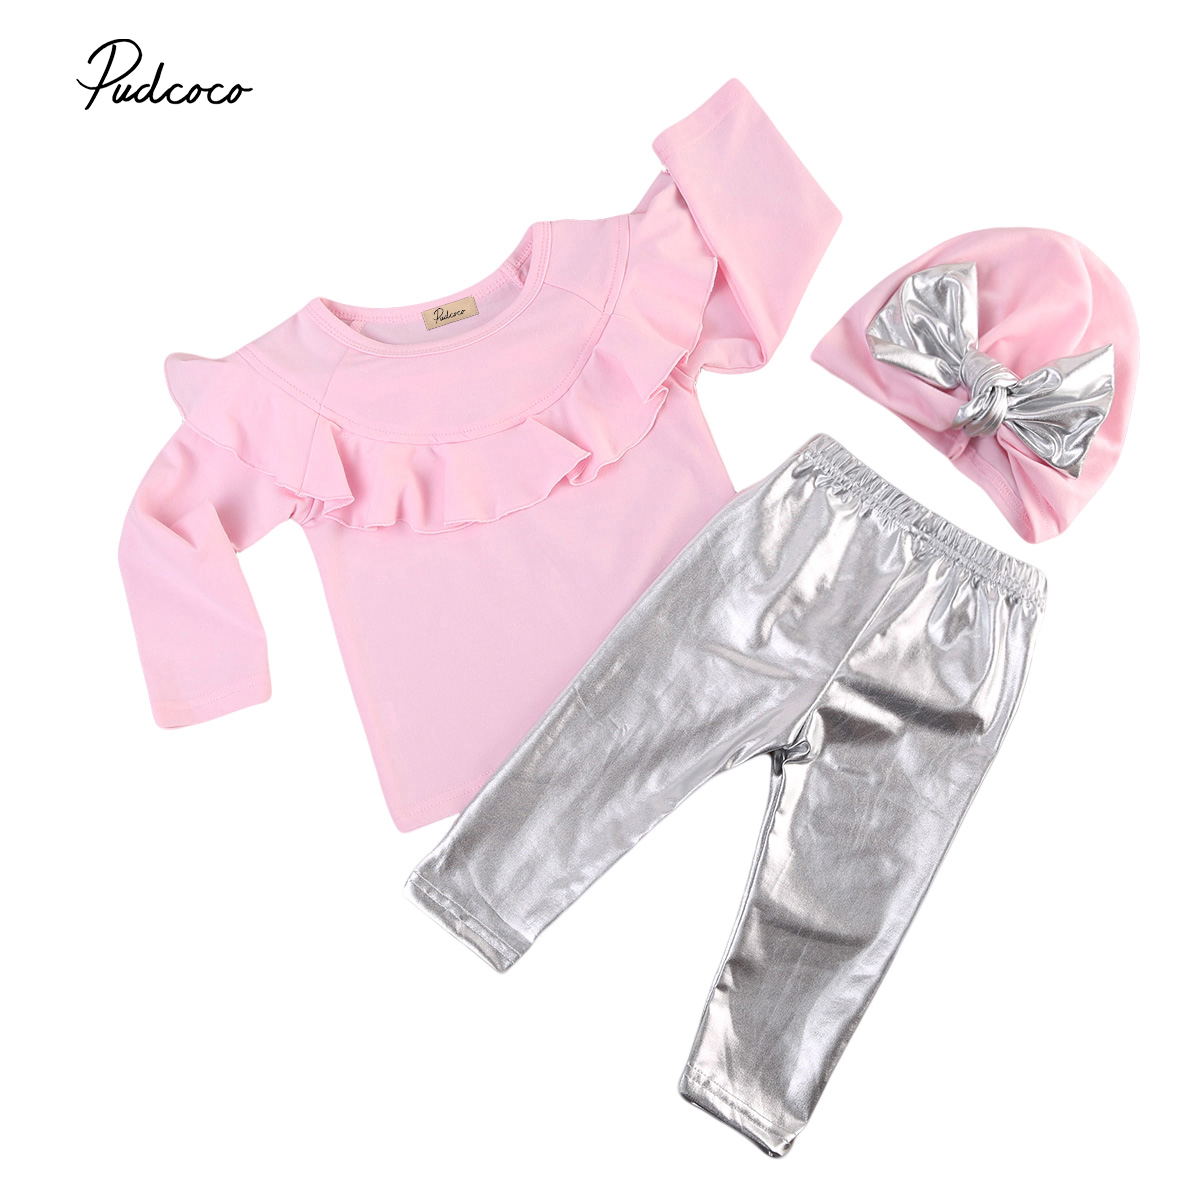 Pudcoco Newborn Infant Baby Girl Ruffle Tops Sweatshirt Long Sleeve T-Shirt Silver Leggings Pants Hat Outfits Set Winter Clothes floral baby girl clothing set newborn baby rose pink tops long sleeve bodysuit pants 2017 bebes outfits infant girl clothes set